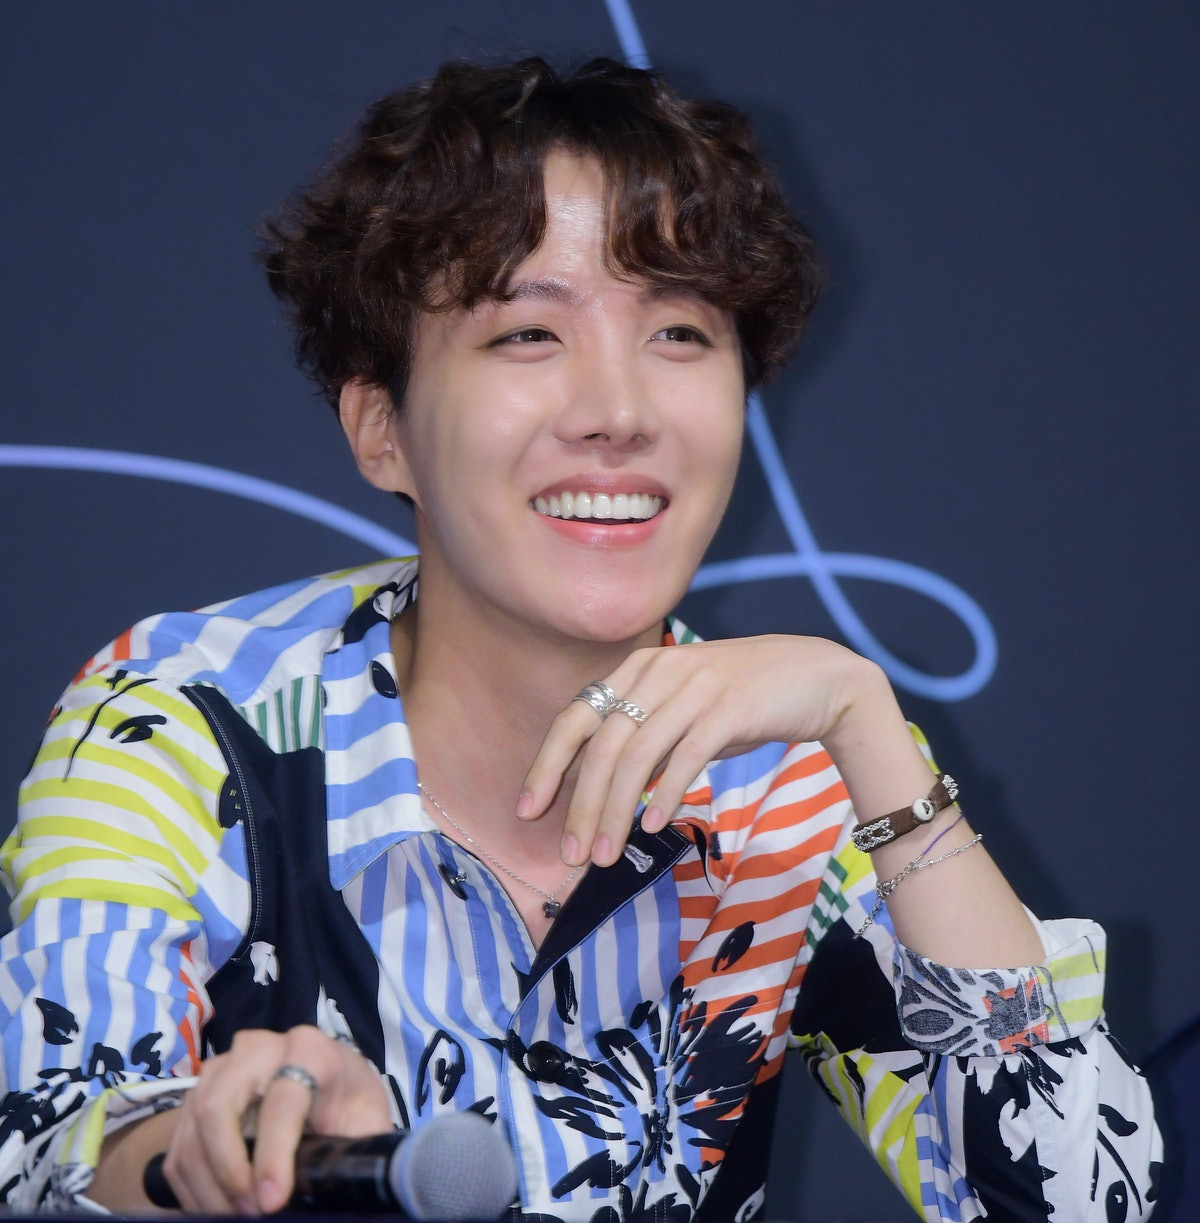 SEOUL, SOUTH KOREA - MAY 24: J-Hope of BTS attends press conference for the BTS's Third Album 'LOVE YOURSELF: Tear' Release at Lotte Hotel Seoul on May 24, 2018 in Seoul, South Korea. (Photo by The Chosunilbo JNS/Imazins via Getty Images)